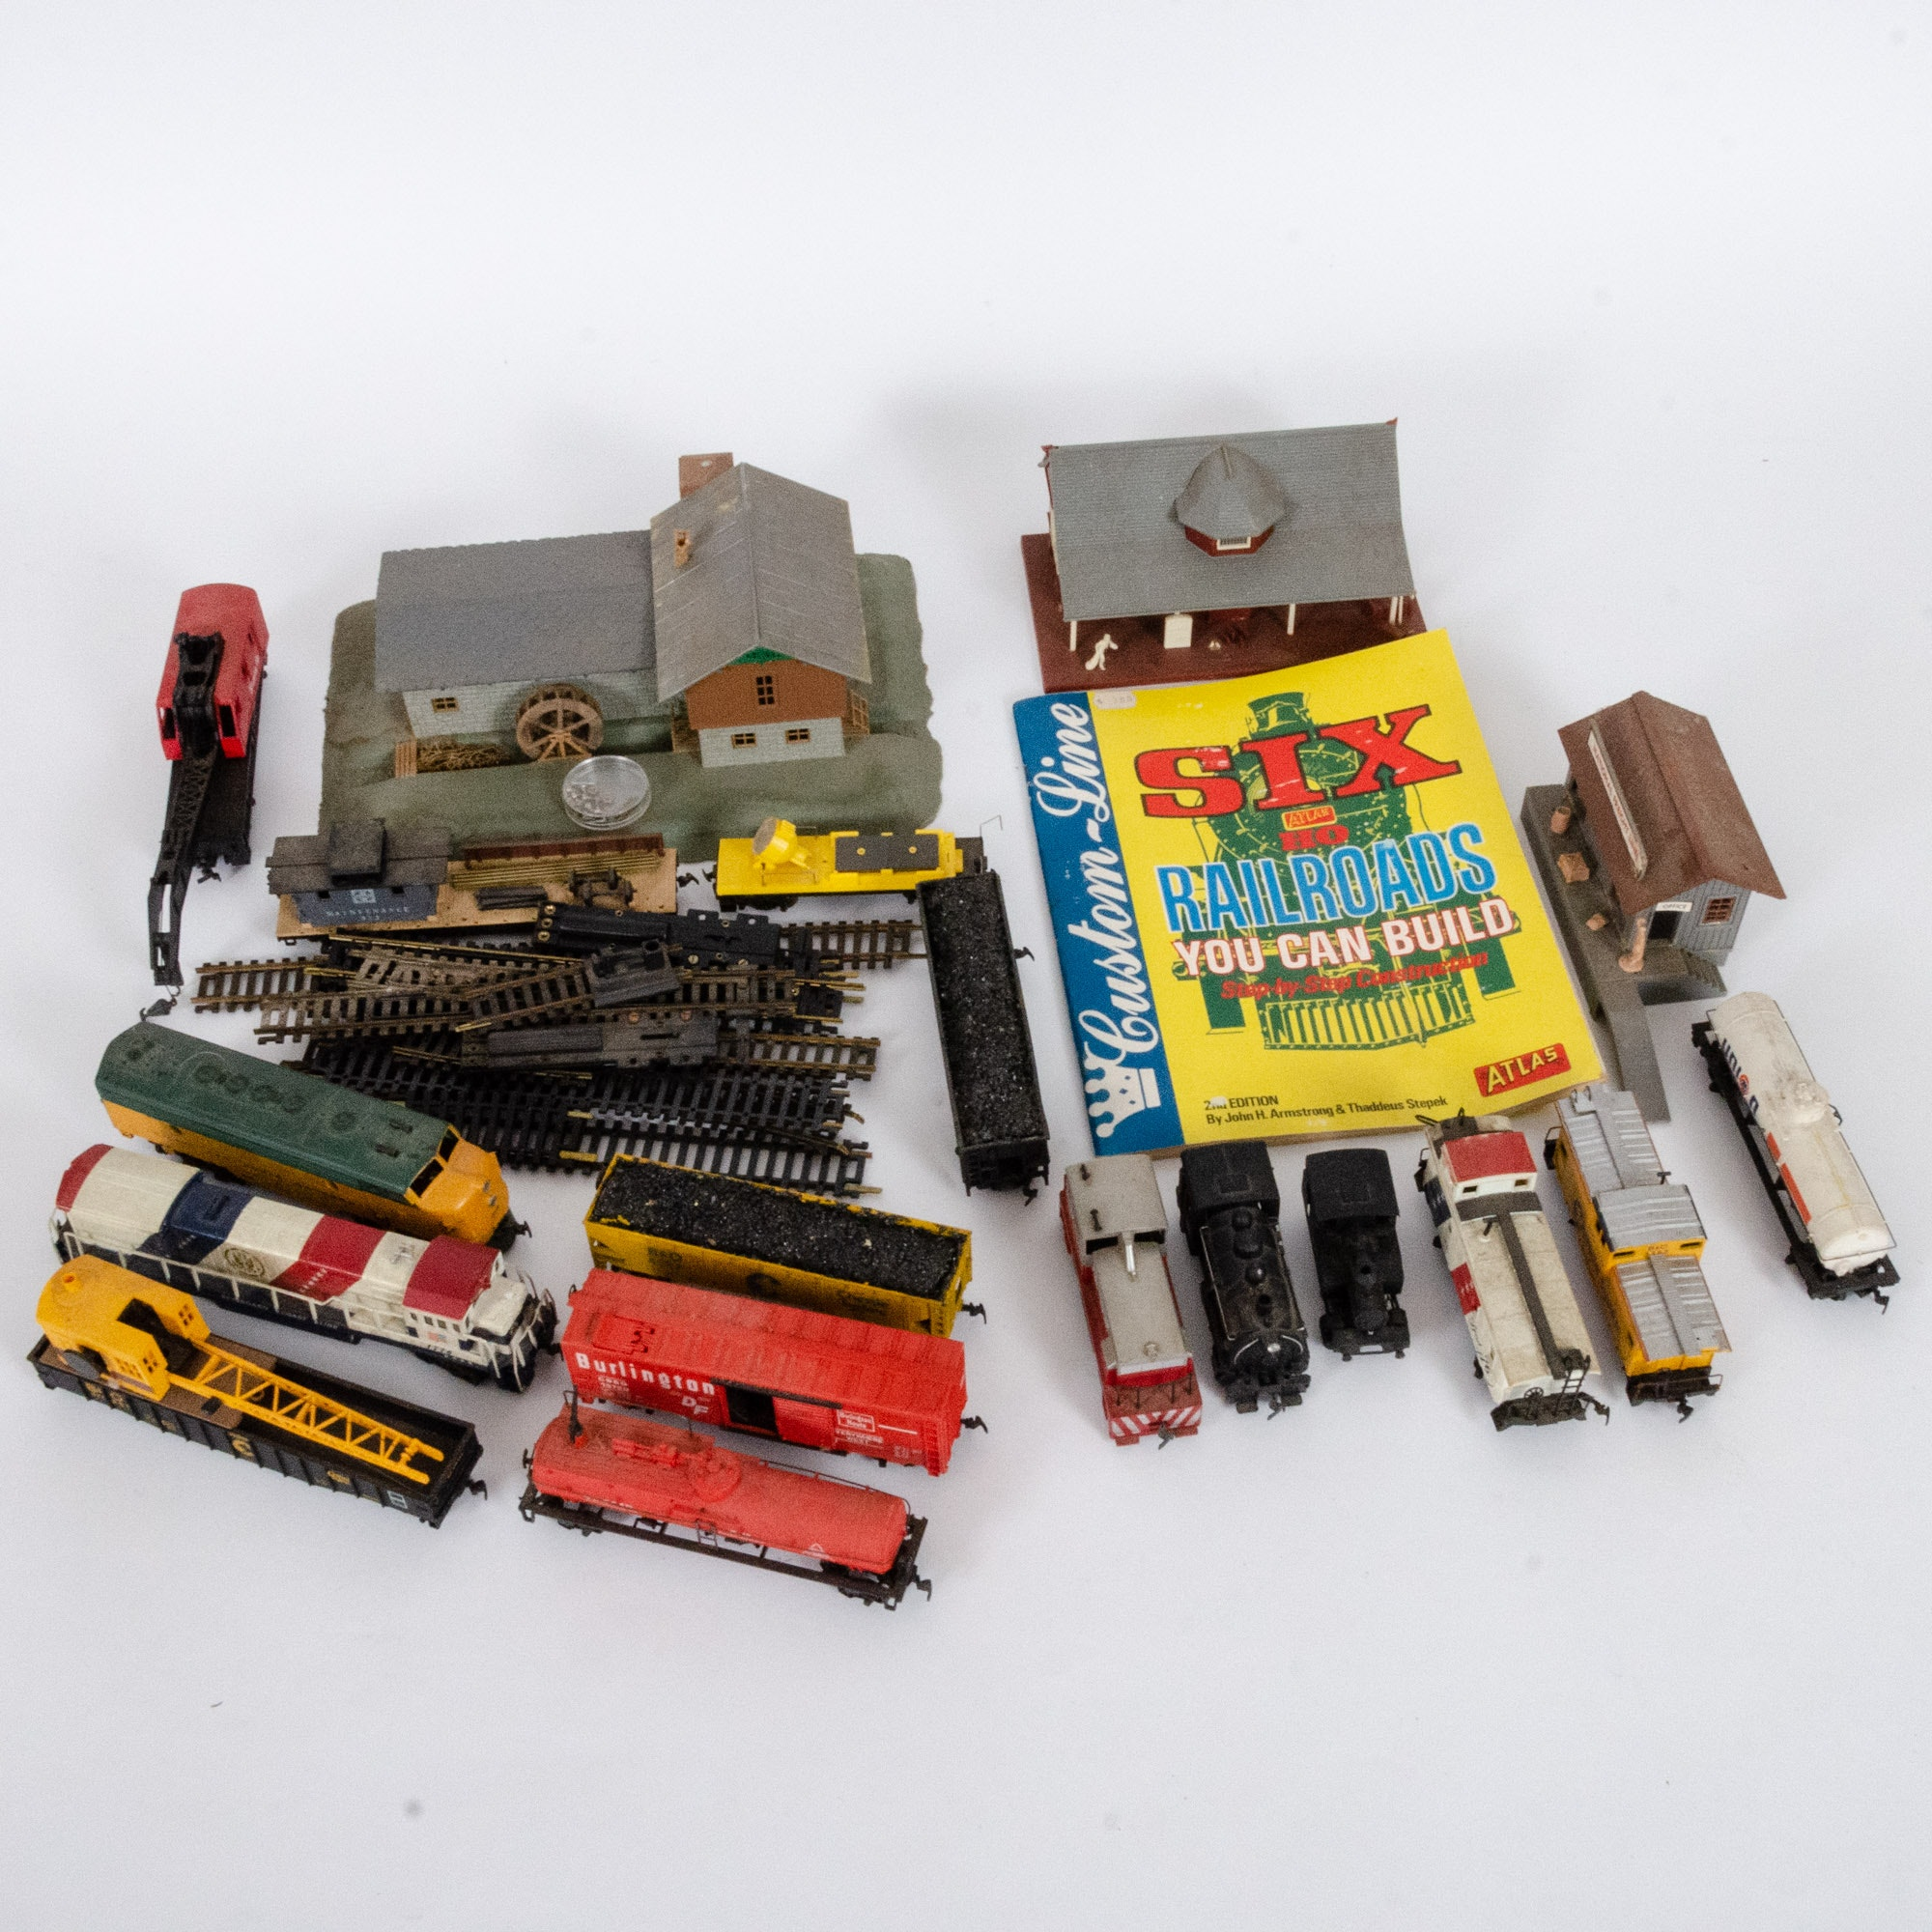 Vintage HO Trains, Tracks and Accessories